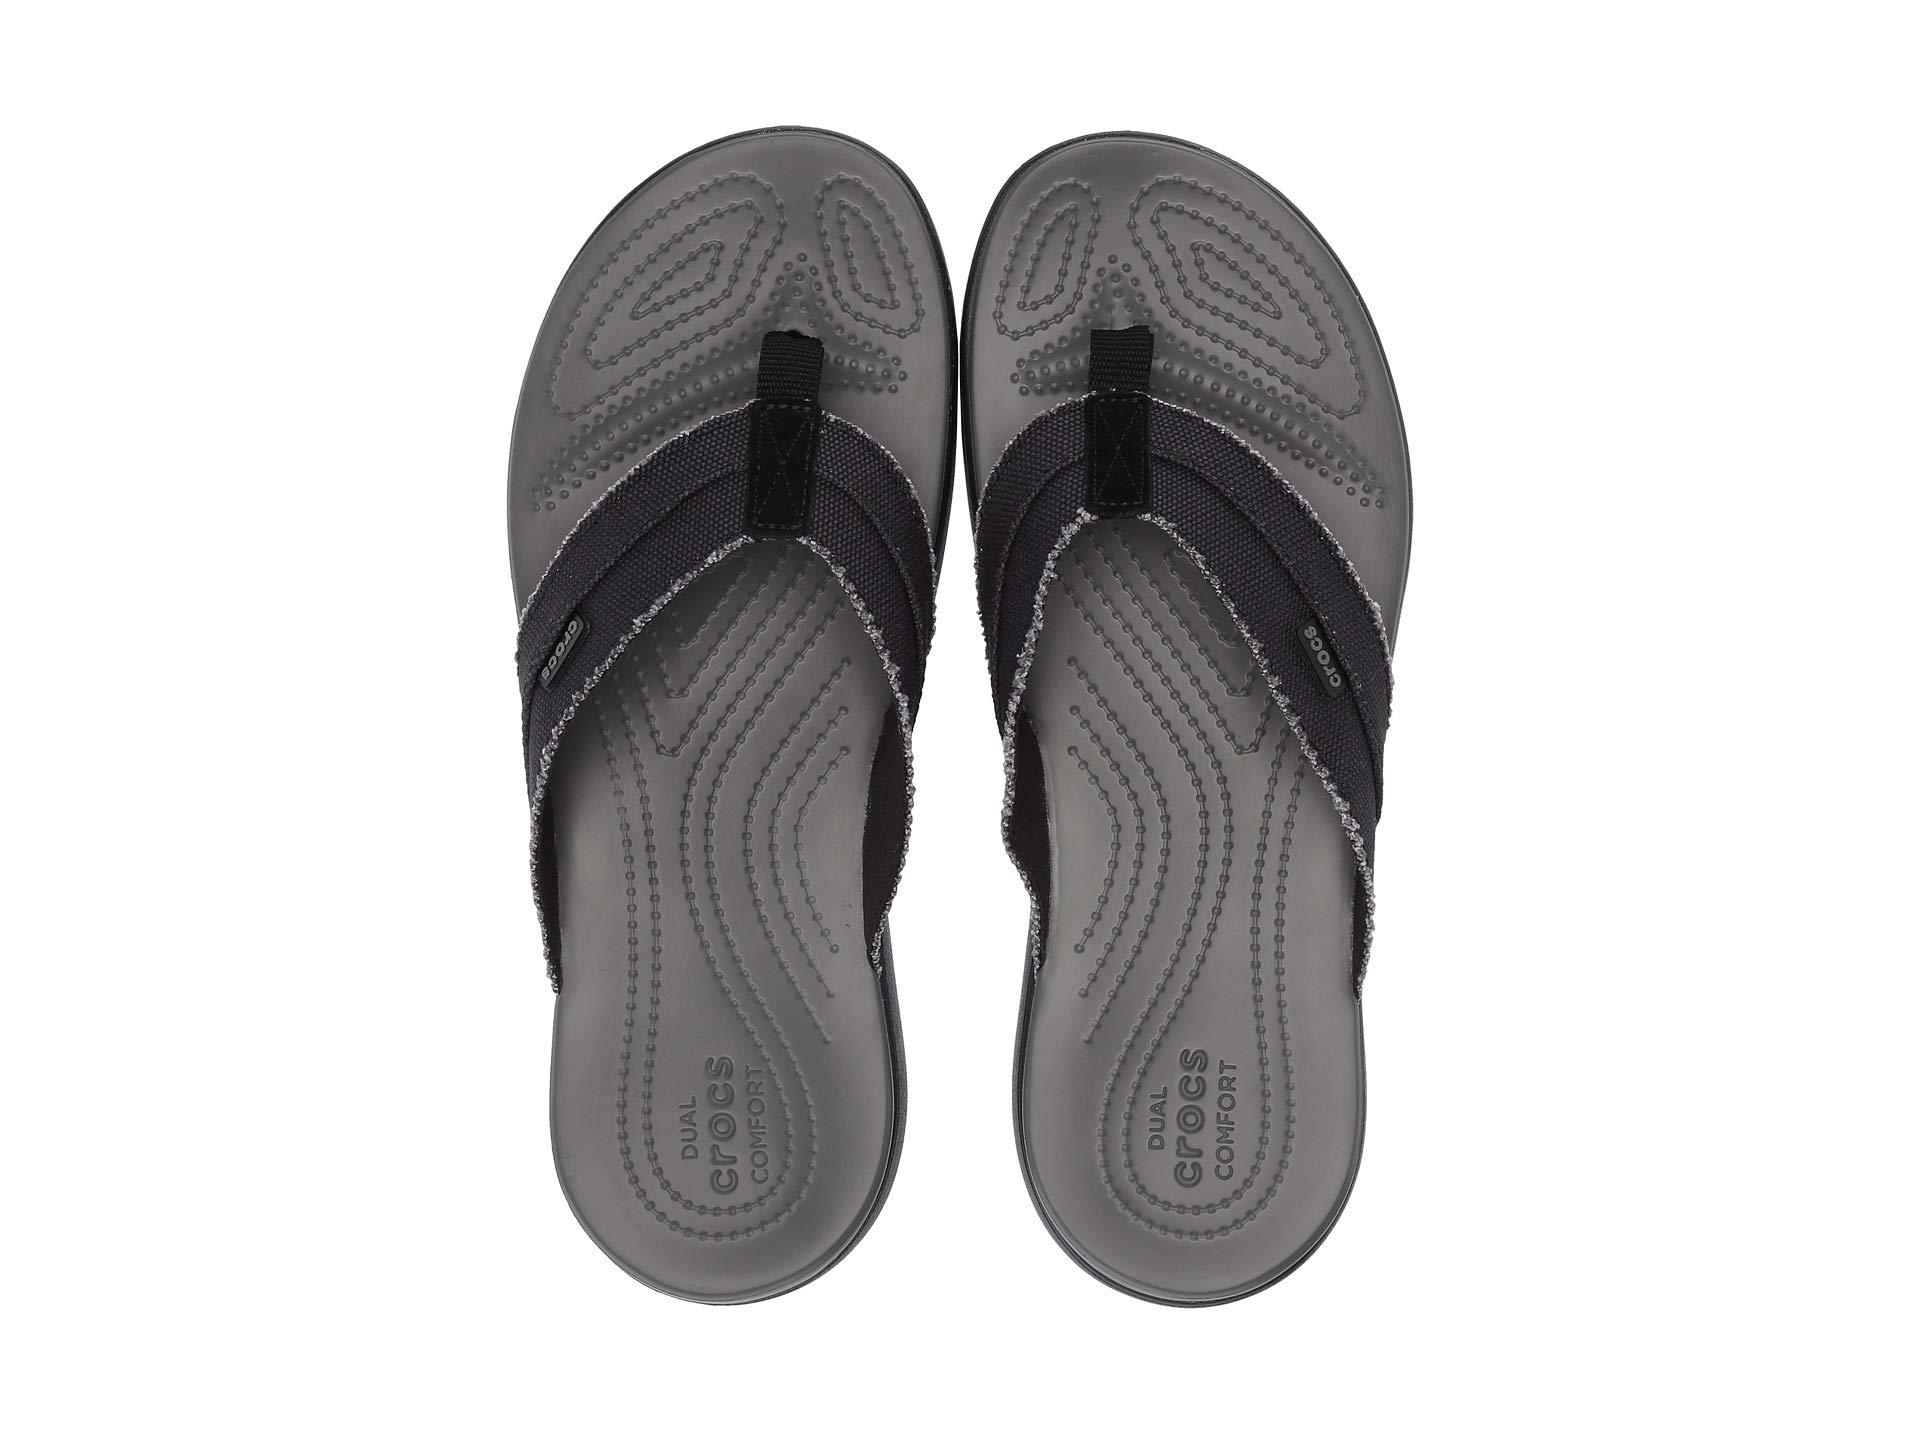 8c4920ada966 Lyst - Crocs™ Santa Cruz Canvas Flip (black slate Grey) Men s ...